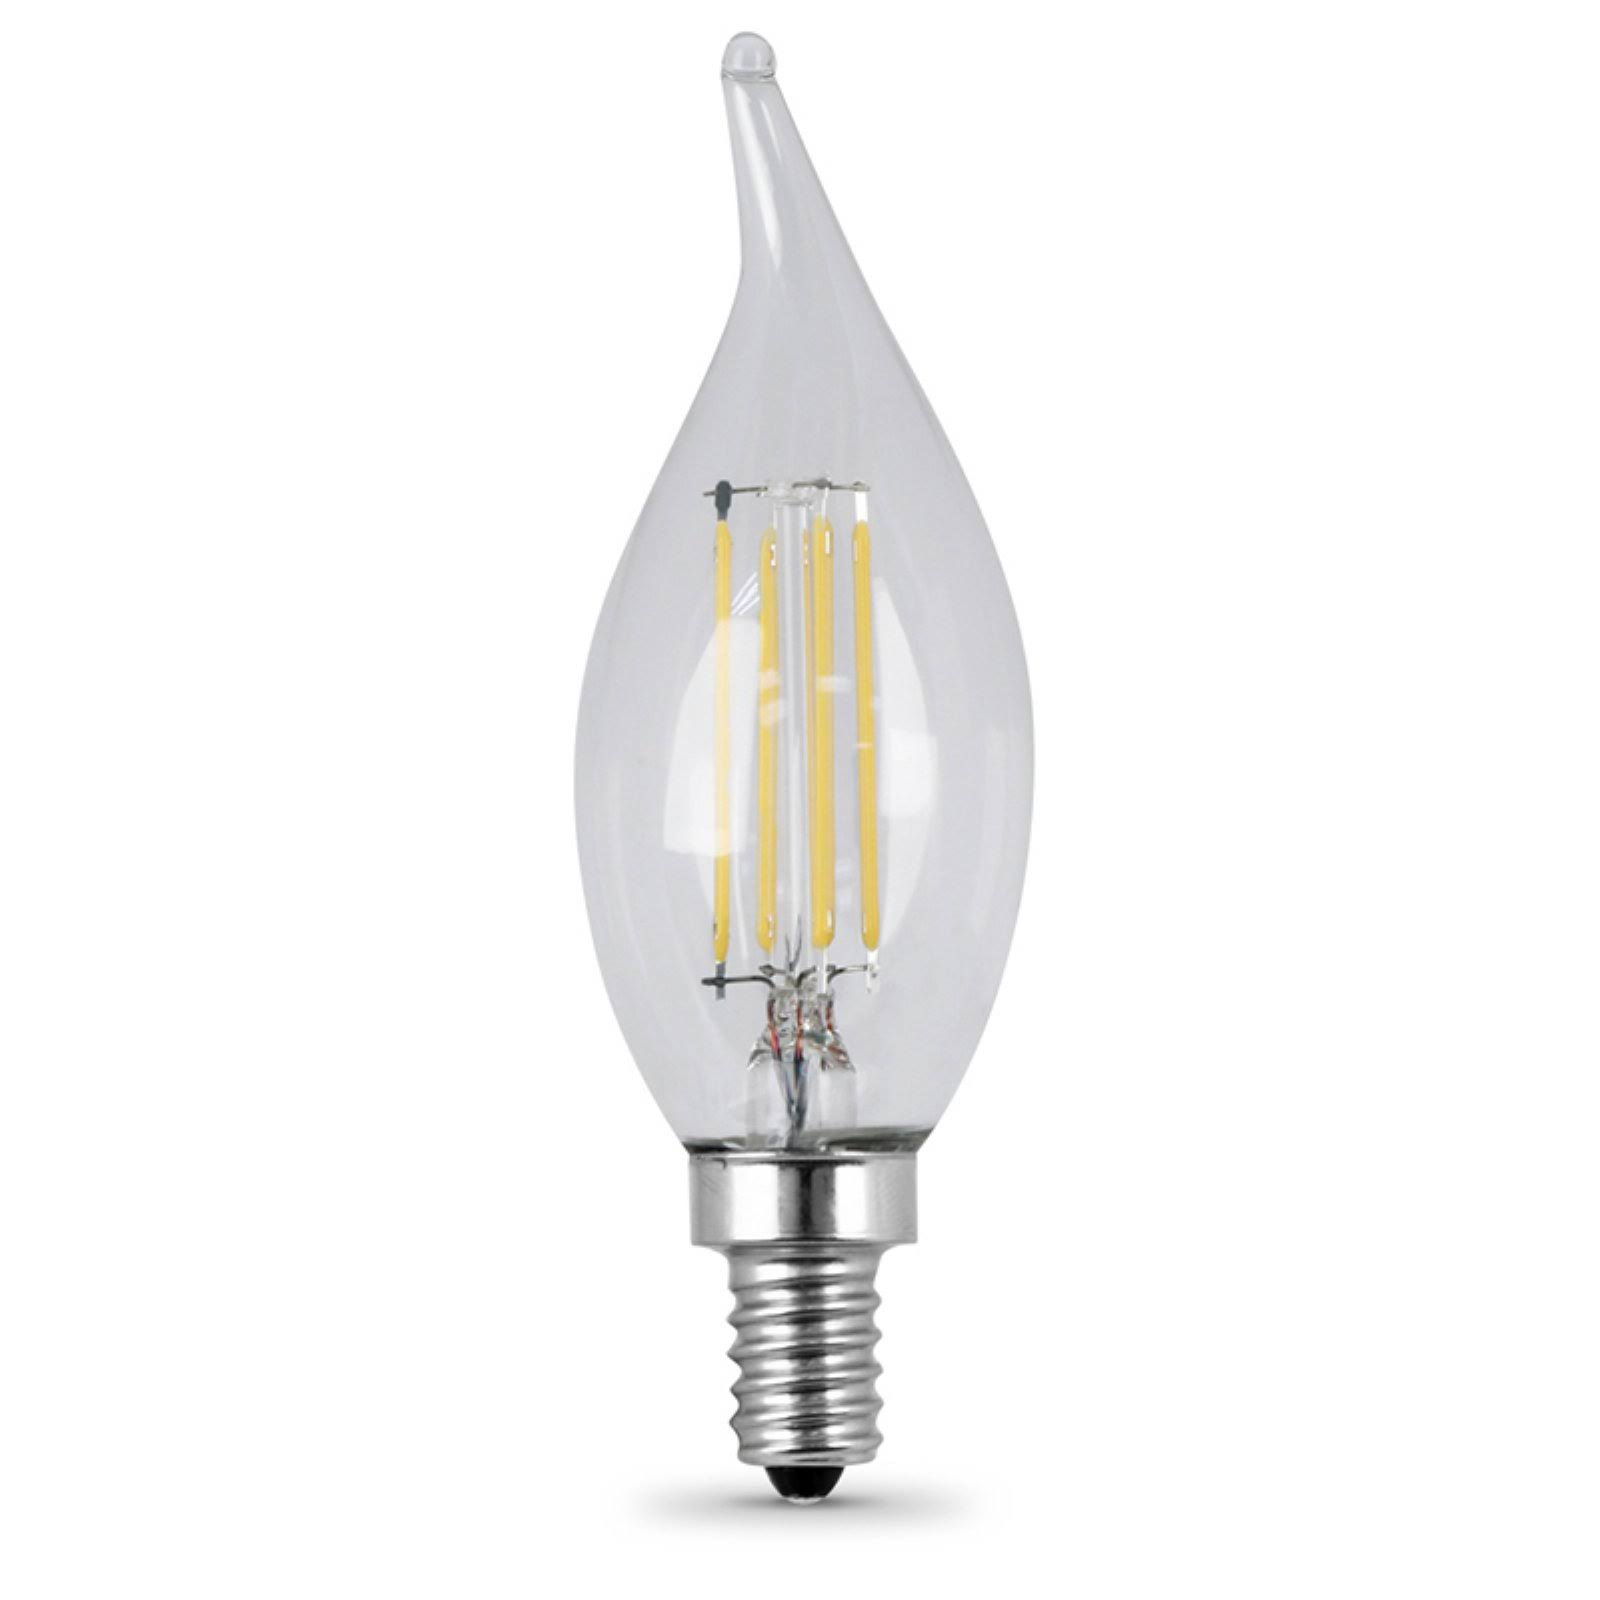 Feit Dimmable Filament LED Decorative Light Bulb - 25W, Bent Tip, Candelabra Base, 2 Pack, Clear